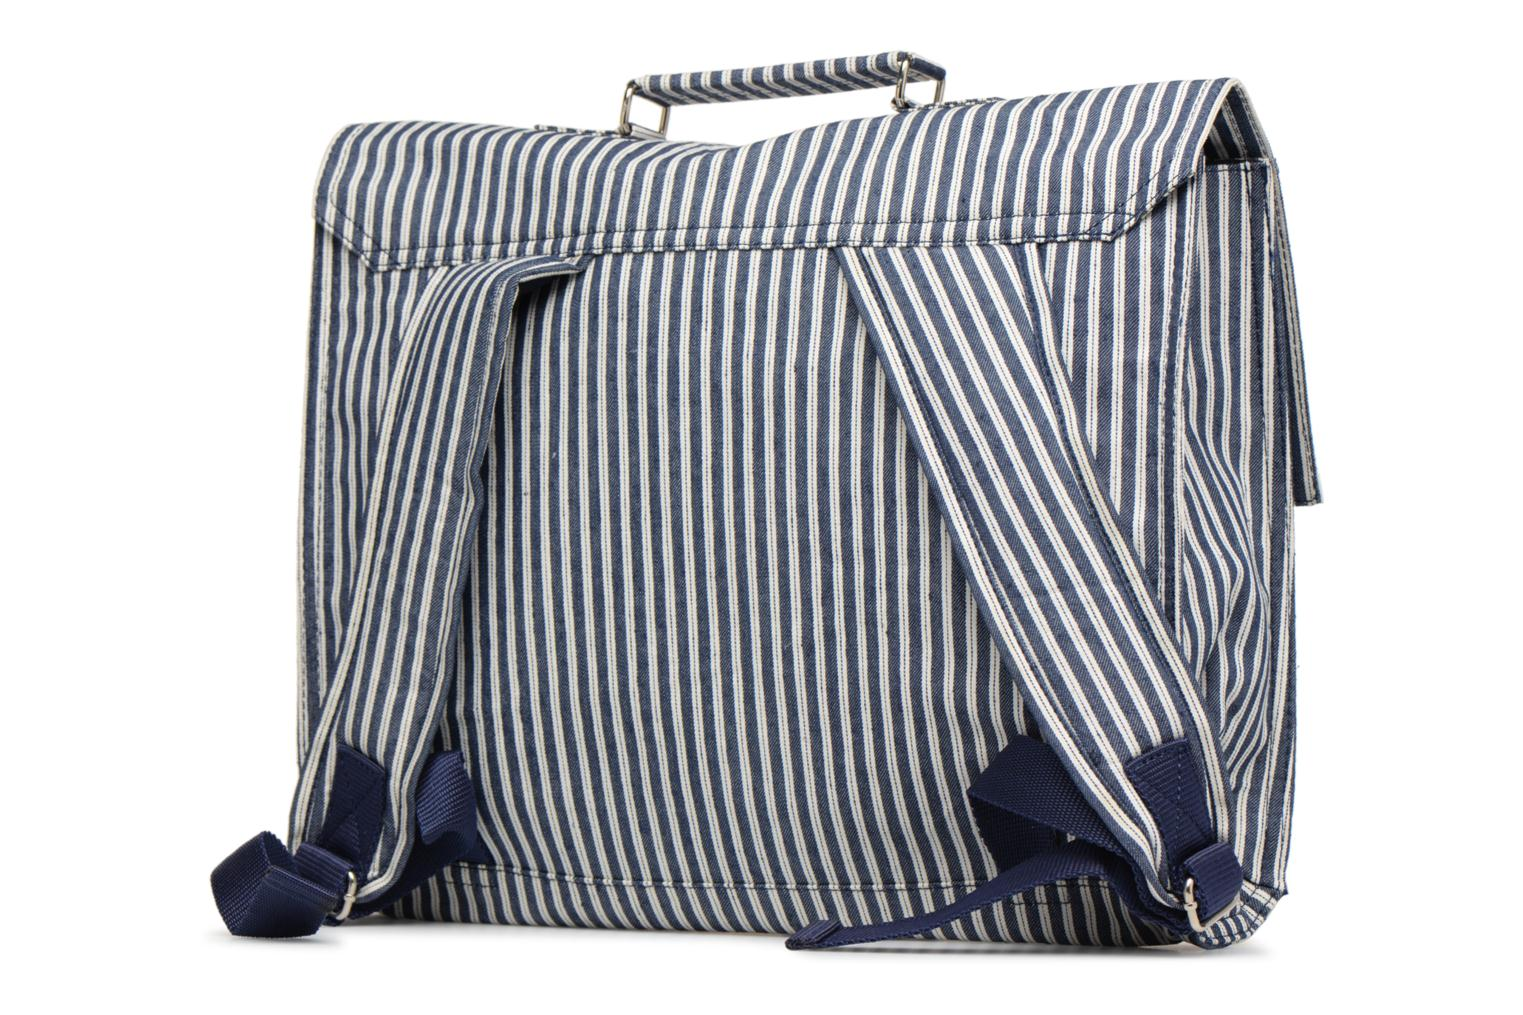 CARTABLE With Made JEAN JEAN STRIPES Bakker 37CM Love tRx7dwq